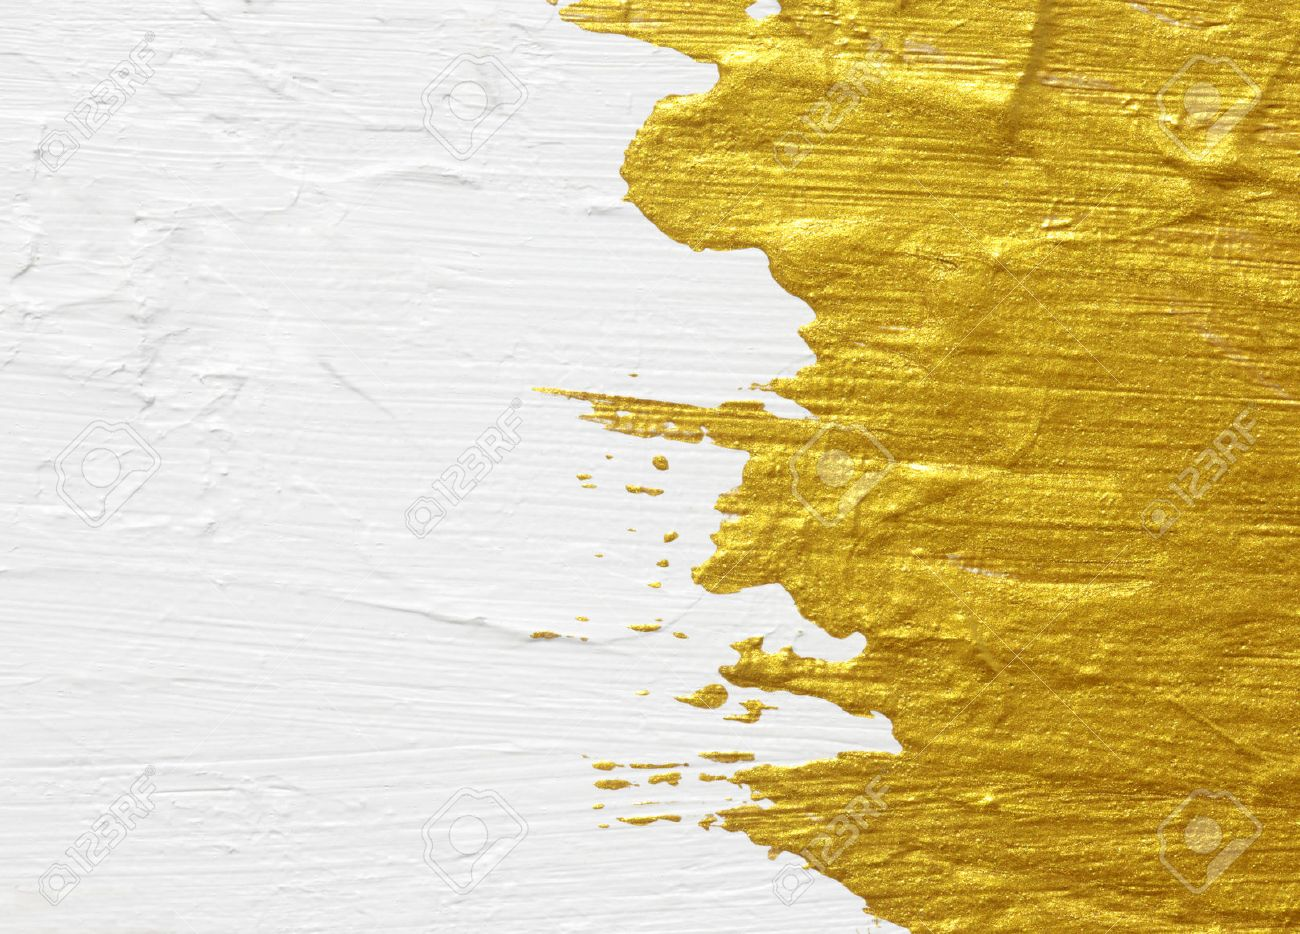 White and gold acrylic textured painting background Stock Photo - 23797204